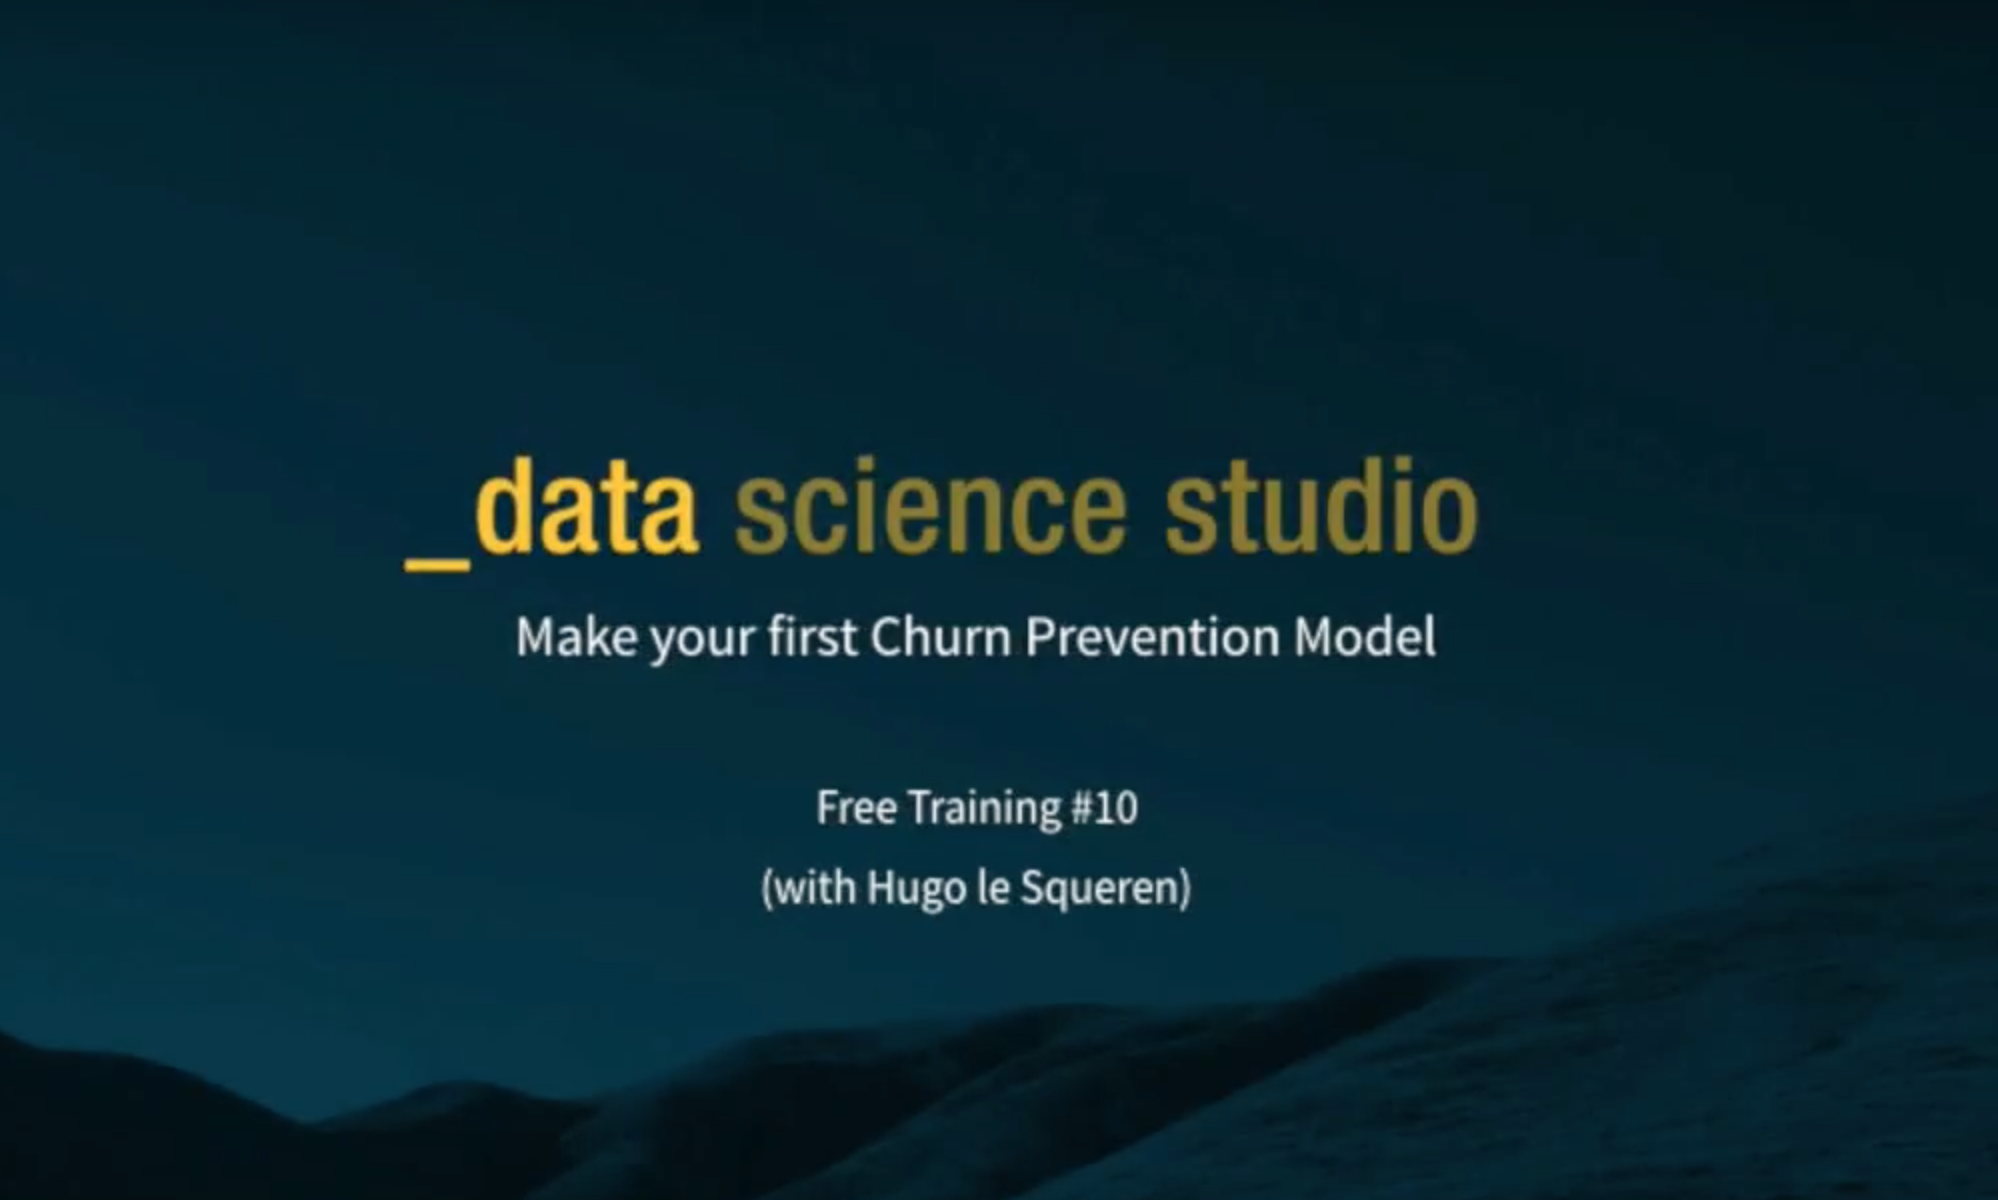 Make your first Churn Prevention Model in DSS [Video]